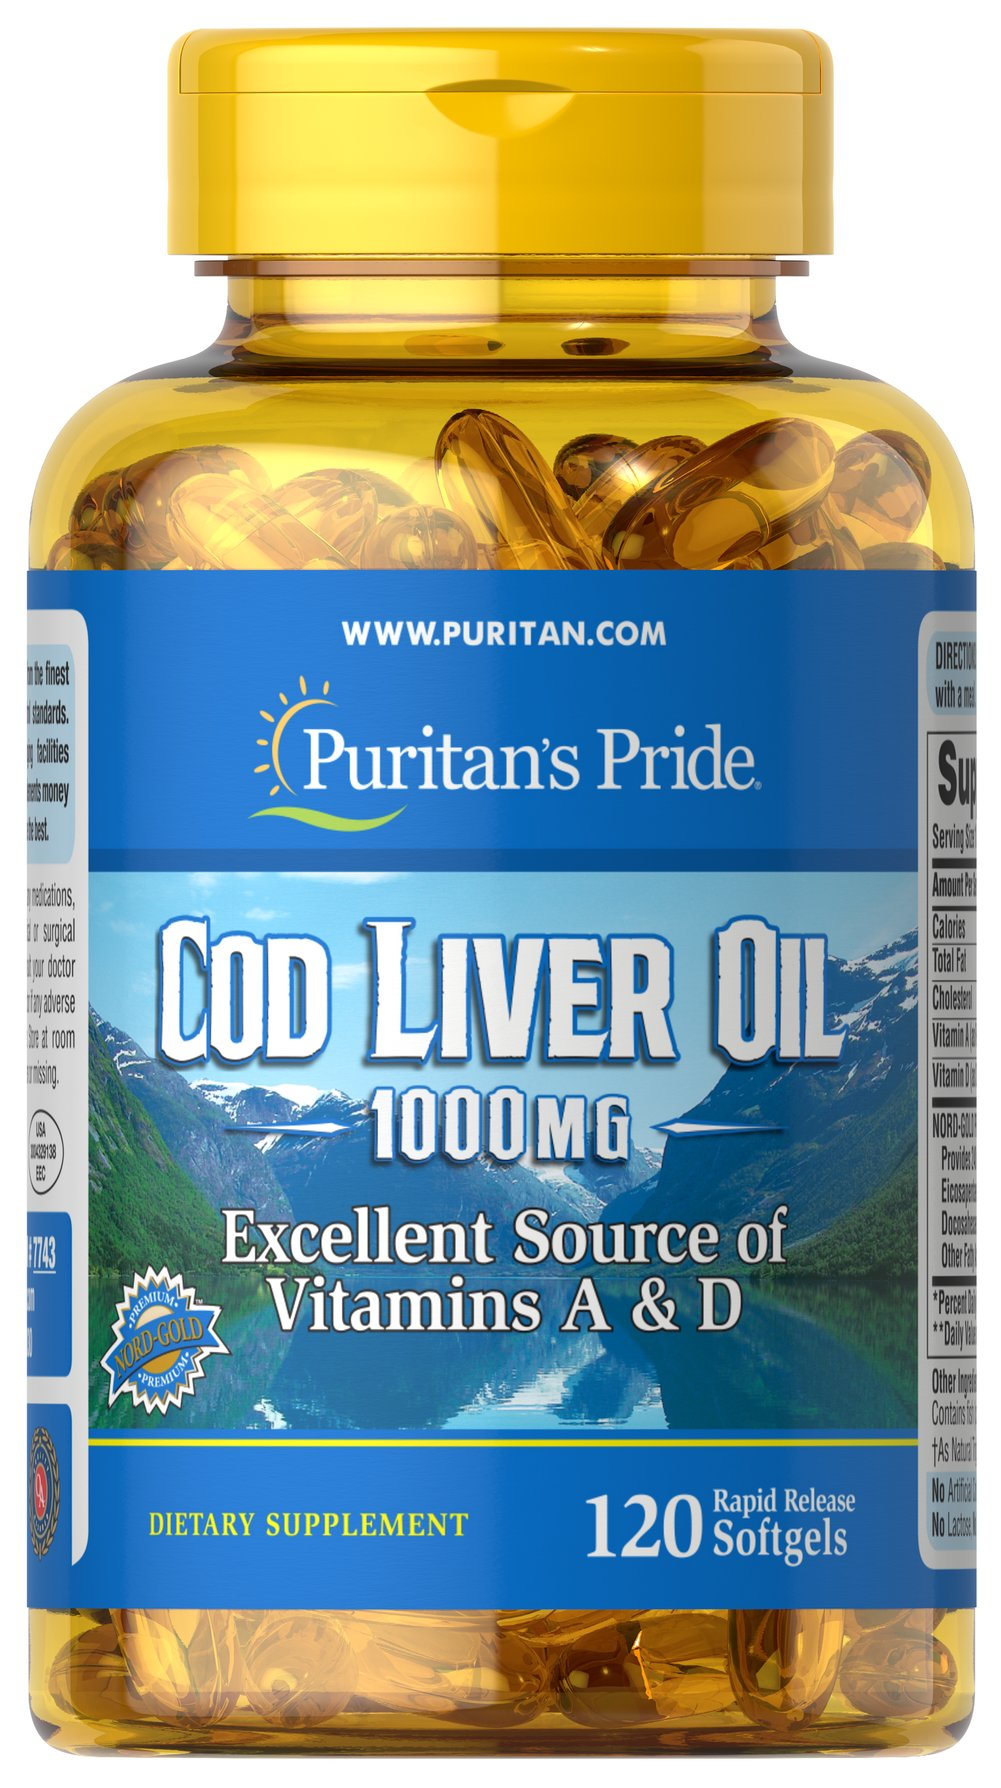 Cod Liver Oil 1000 mg <p>Norwegian cod has traditionally been one of the most popular natural sources of  <strong>both Vitamins A & D</strong>. </p><p>Vitamin D helps maintain healthy bones in adults. ** </p><p>Vitamin A helps maintain eye health. **</p><p>Vitamins A & D help regulate the immune system.**</p> 120 Softgels 1000 mg $22.59